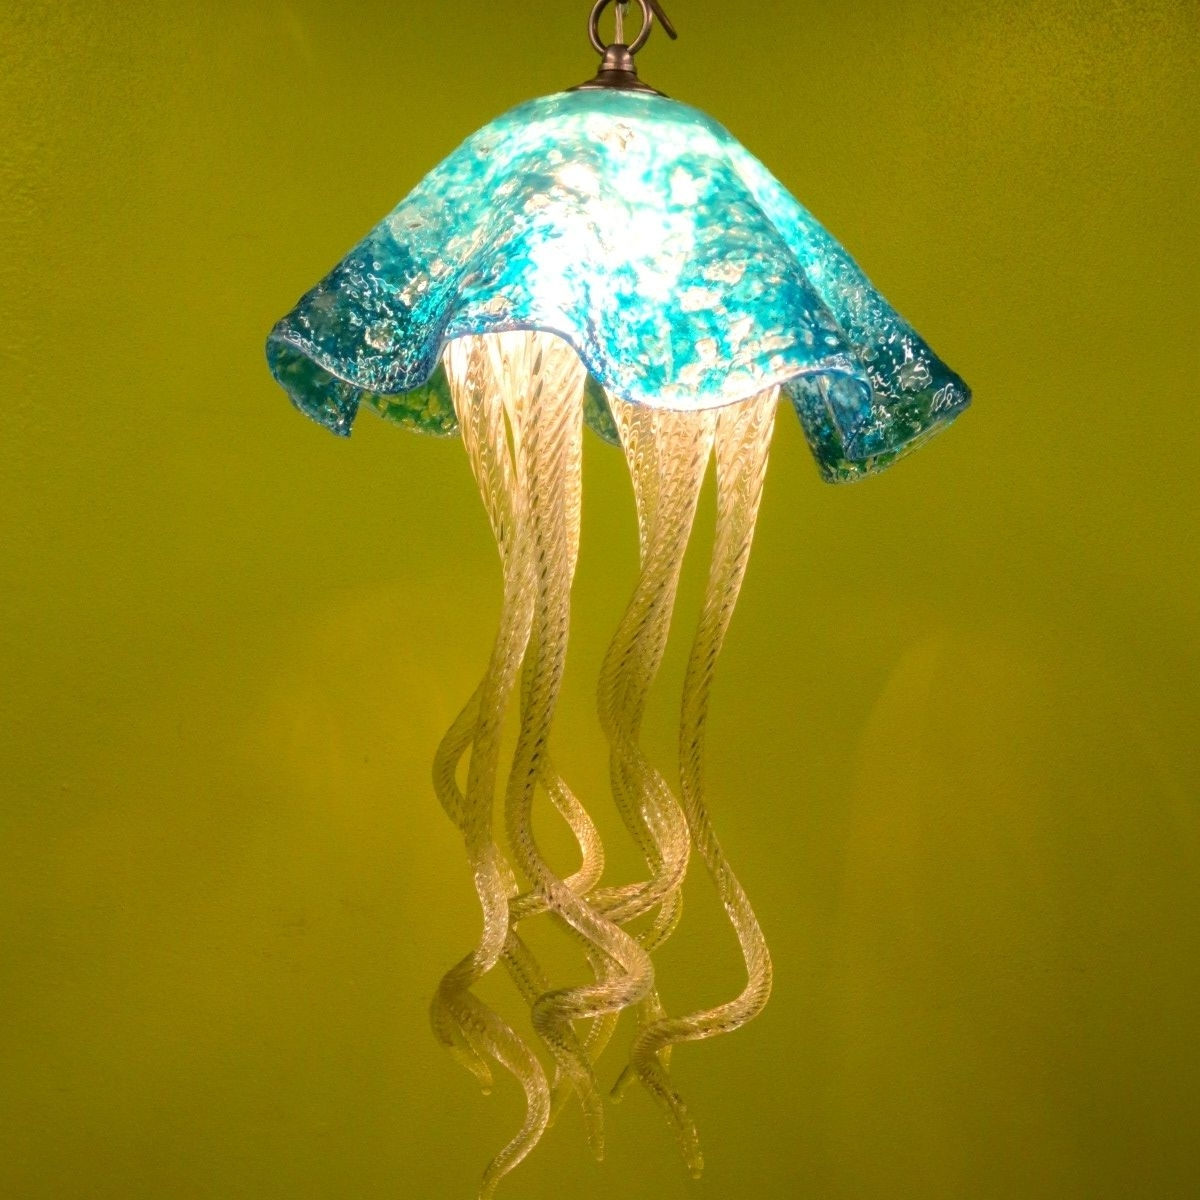 Turquoise Pendant Chandeliers Pertaining To Well Liked Buy A Hand Made Jellyfish Pendant Light – Turquoise Jellyfish (View 4 of 20)